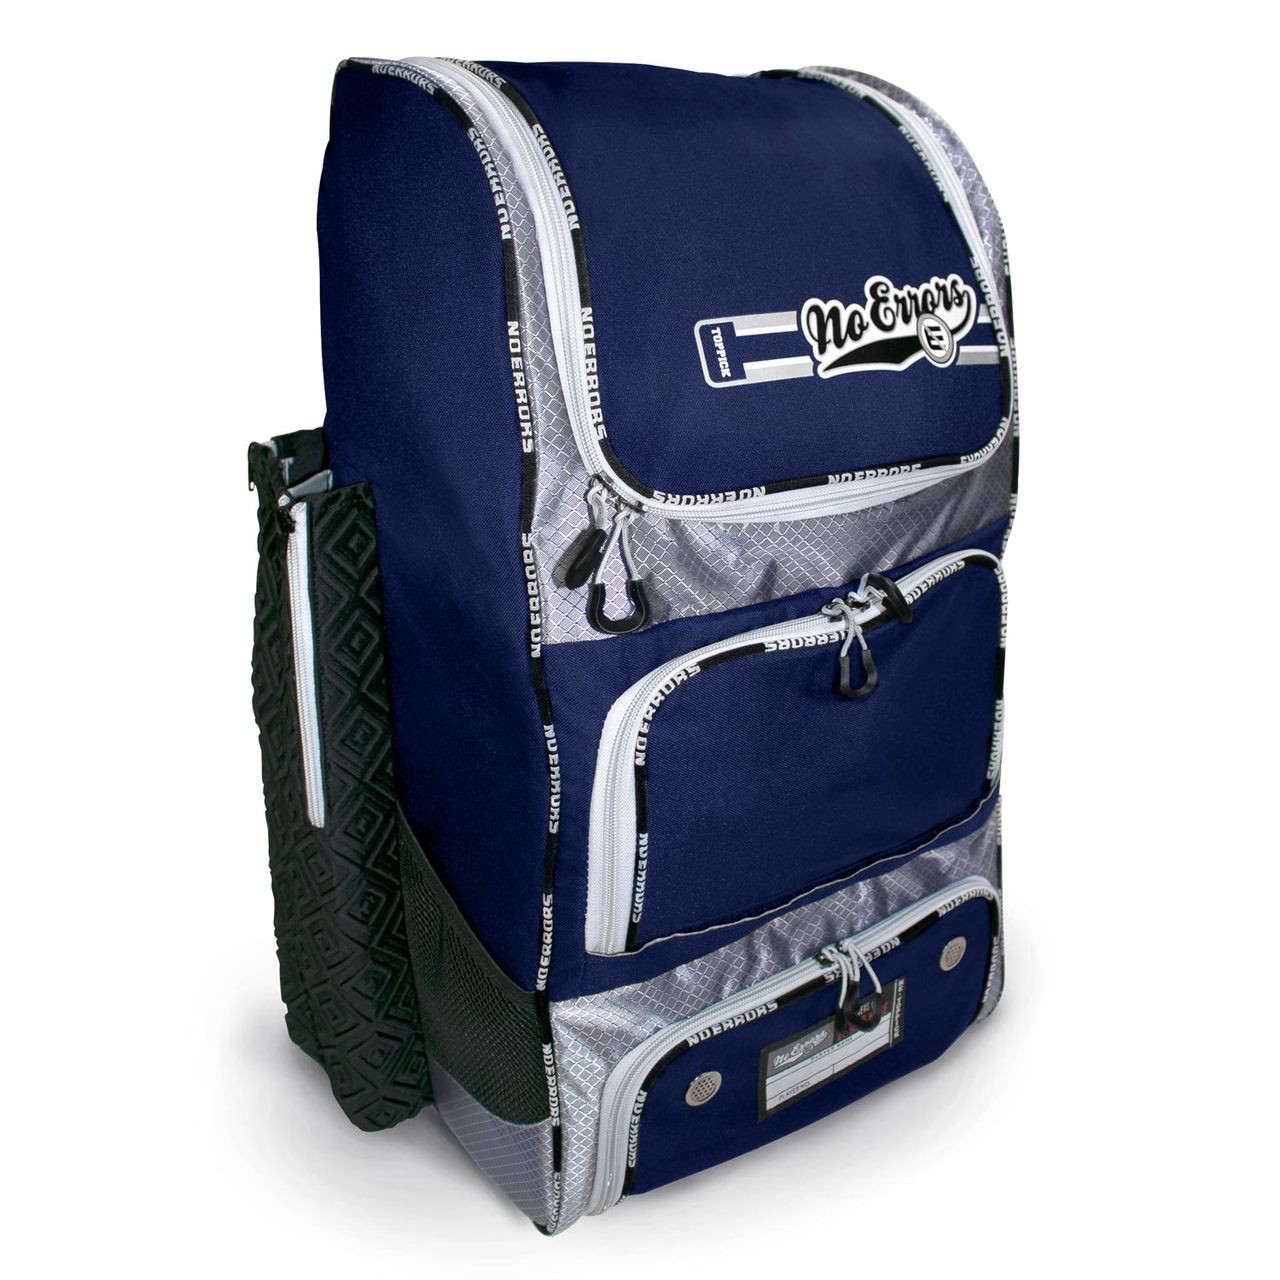 No Errors Top Pick Backpack